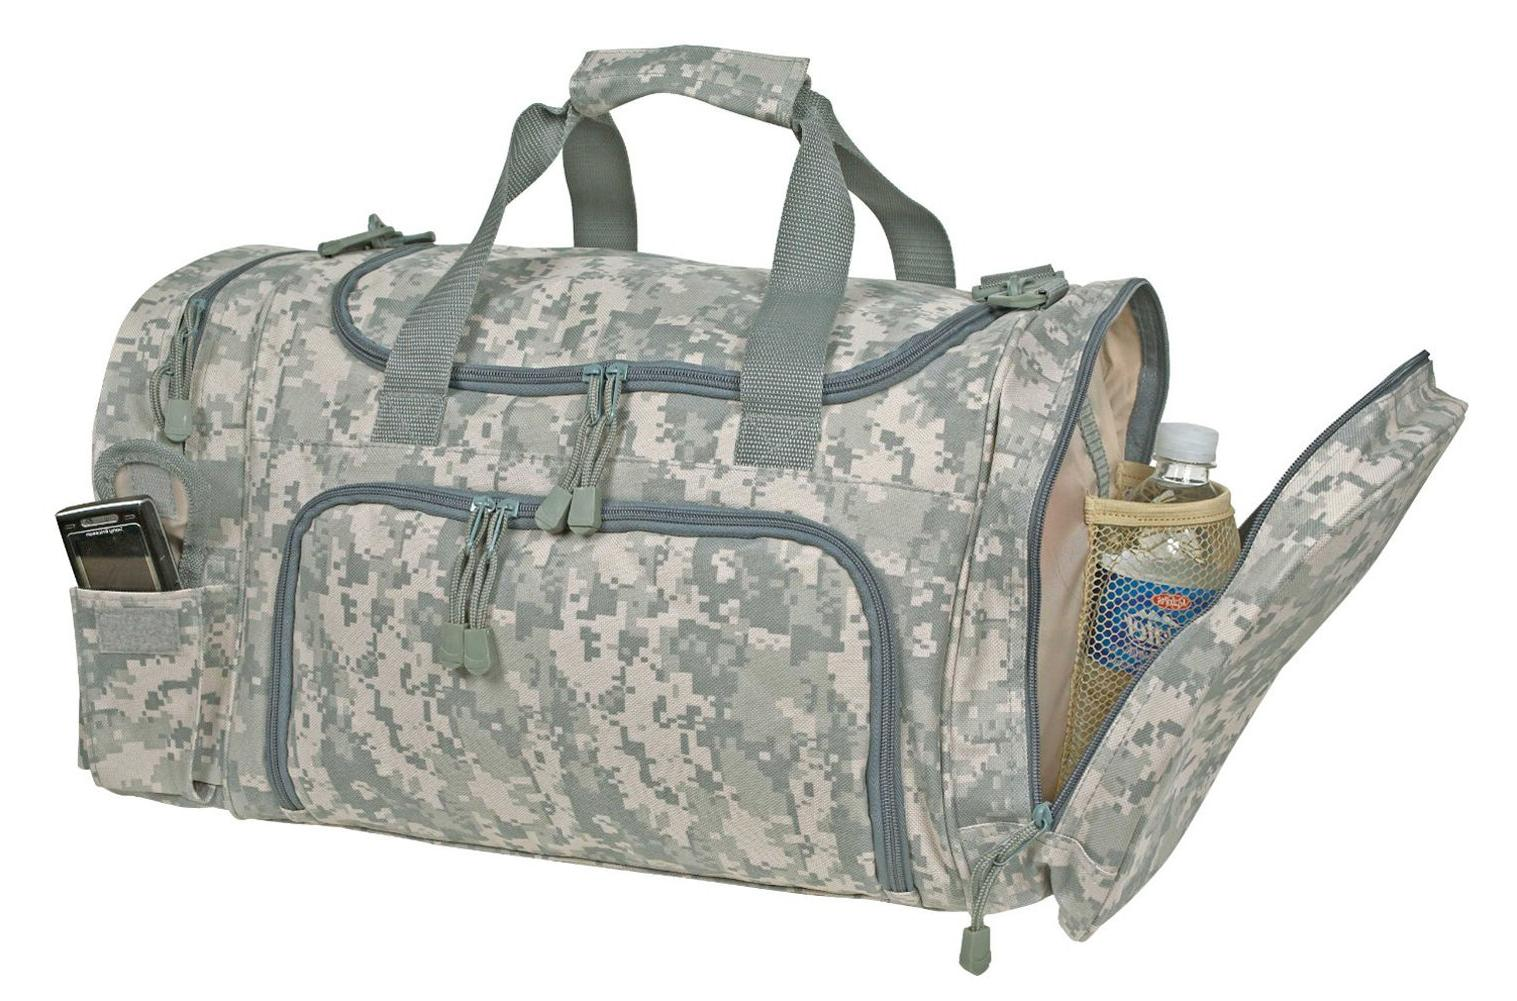 Camo Gear Duffel Bag